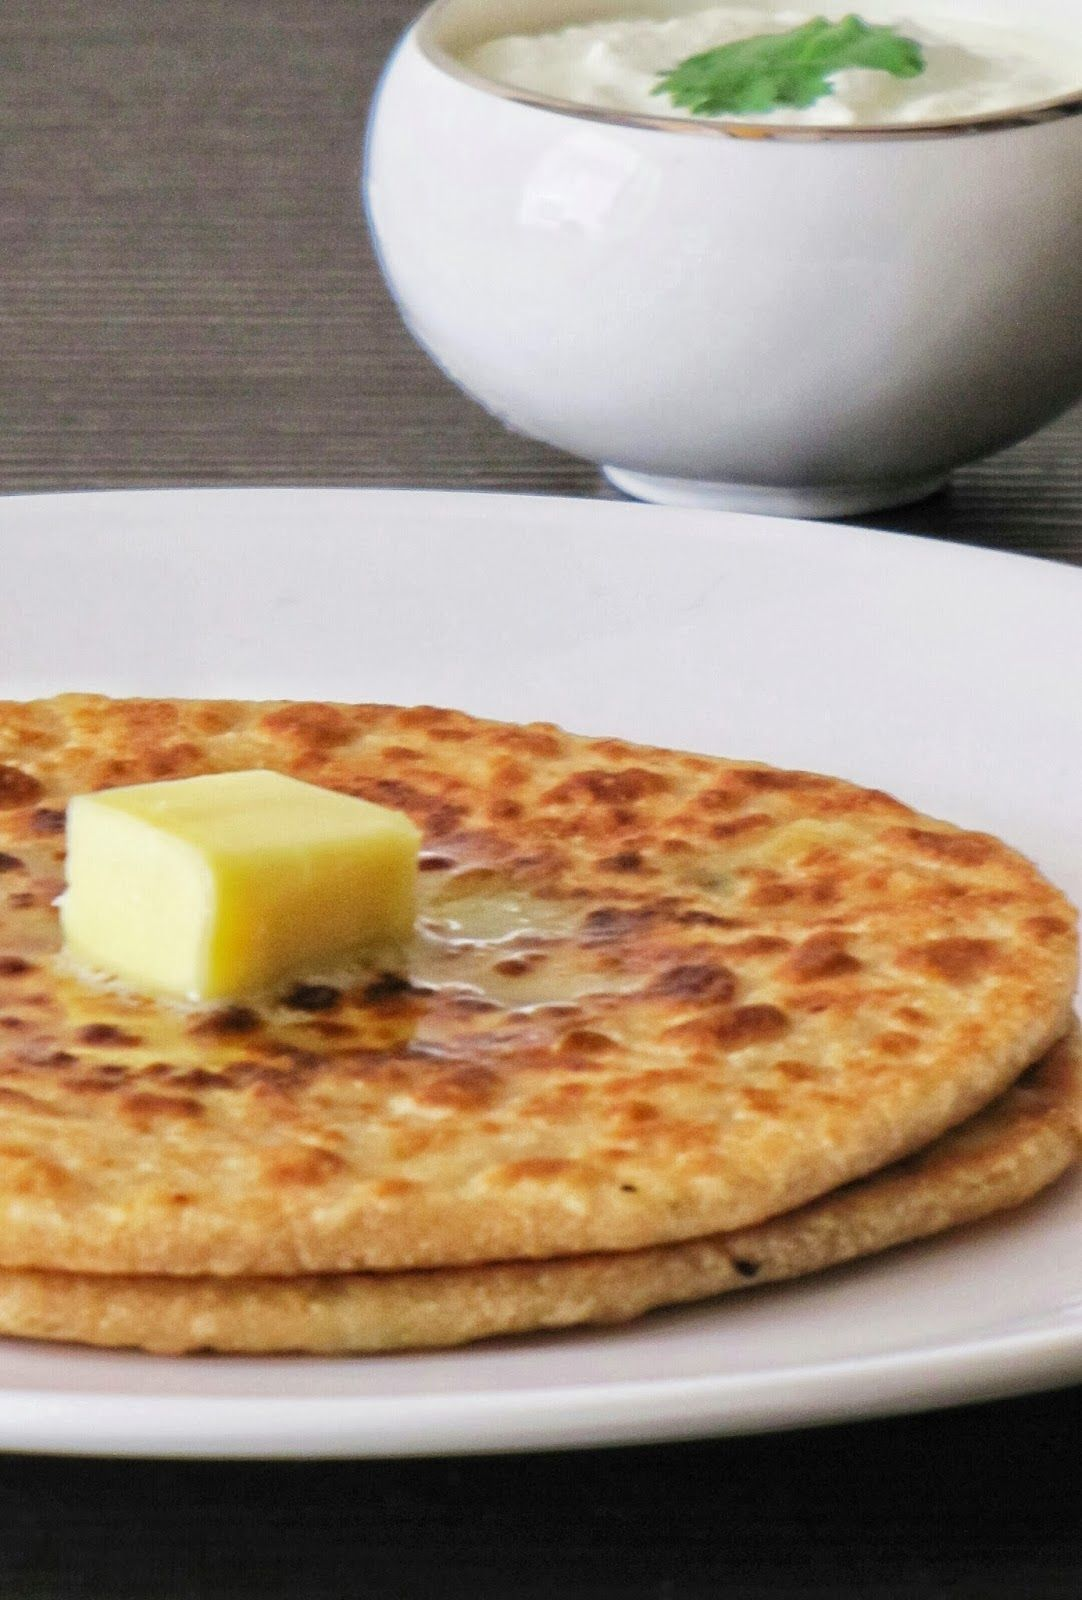 Aloo paratha recipe famous north indian and punjabi breakfast aloo paratha recipe famous north indian and punjabi breakfast forumfinder Image collections